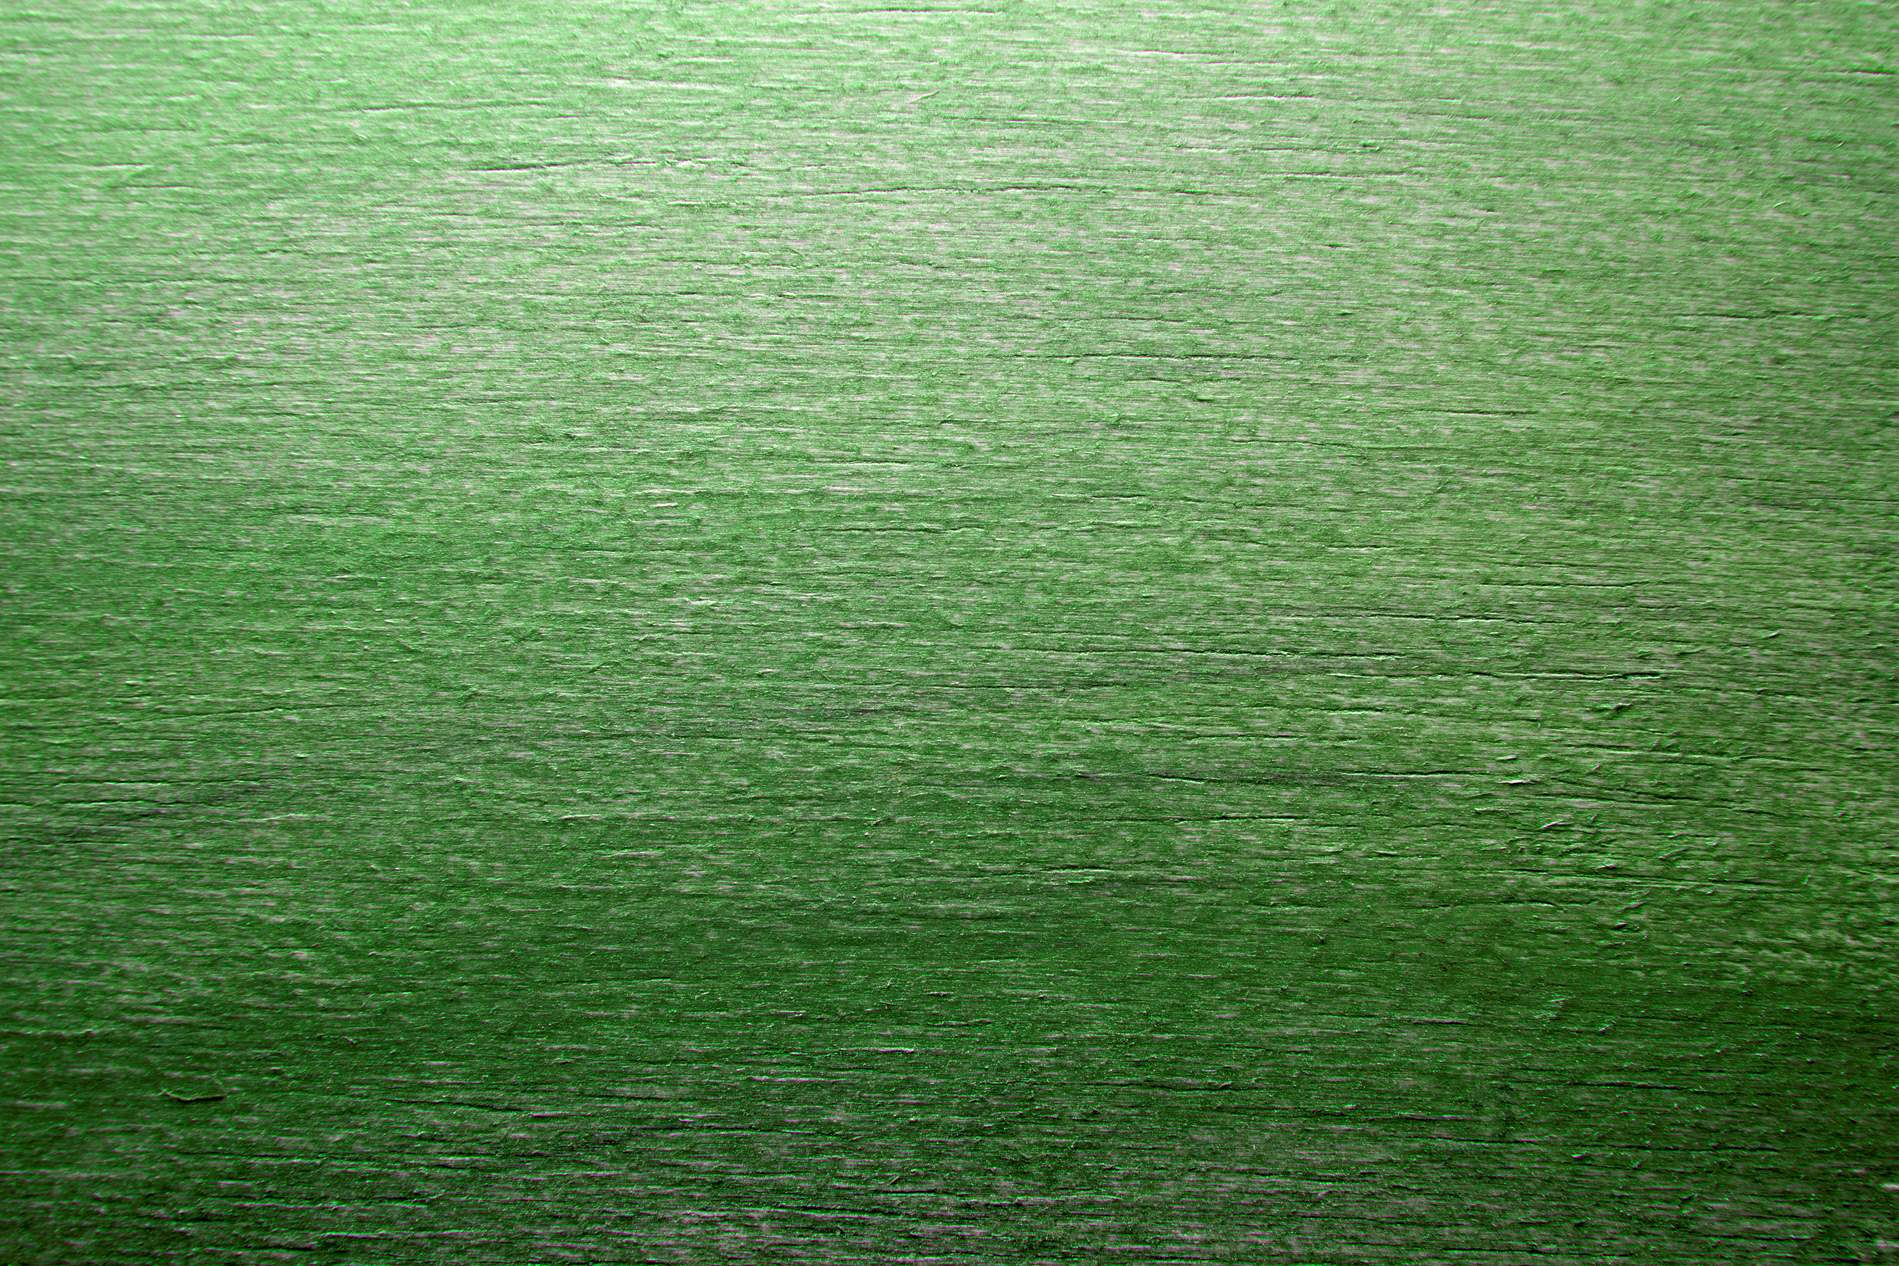 Light Green Vintage Texture Background